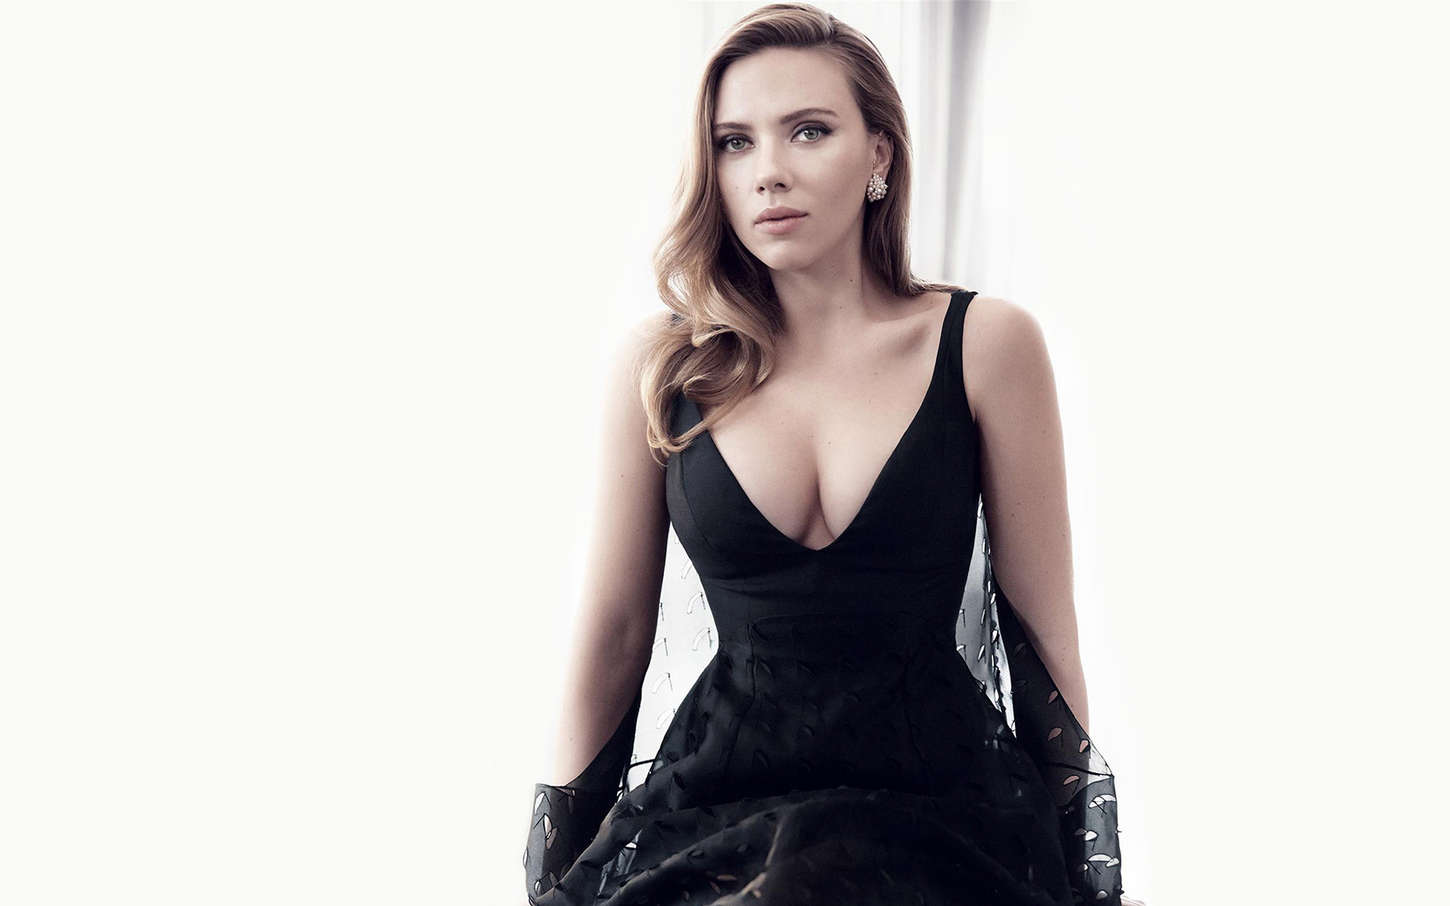 Scarlett Johansson Wallpaper: Scarlett Johansson Hot Wallpapers